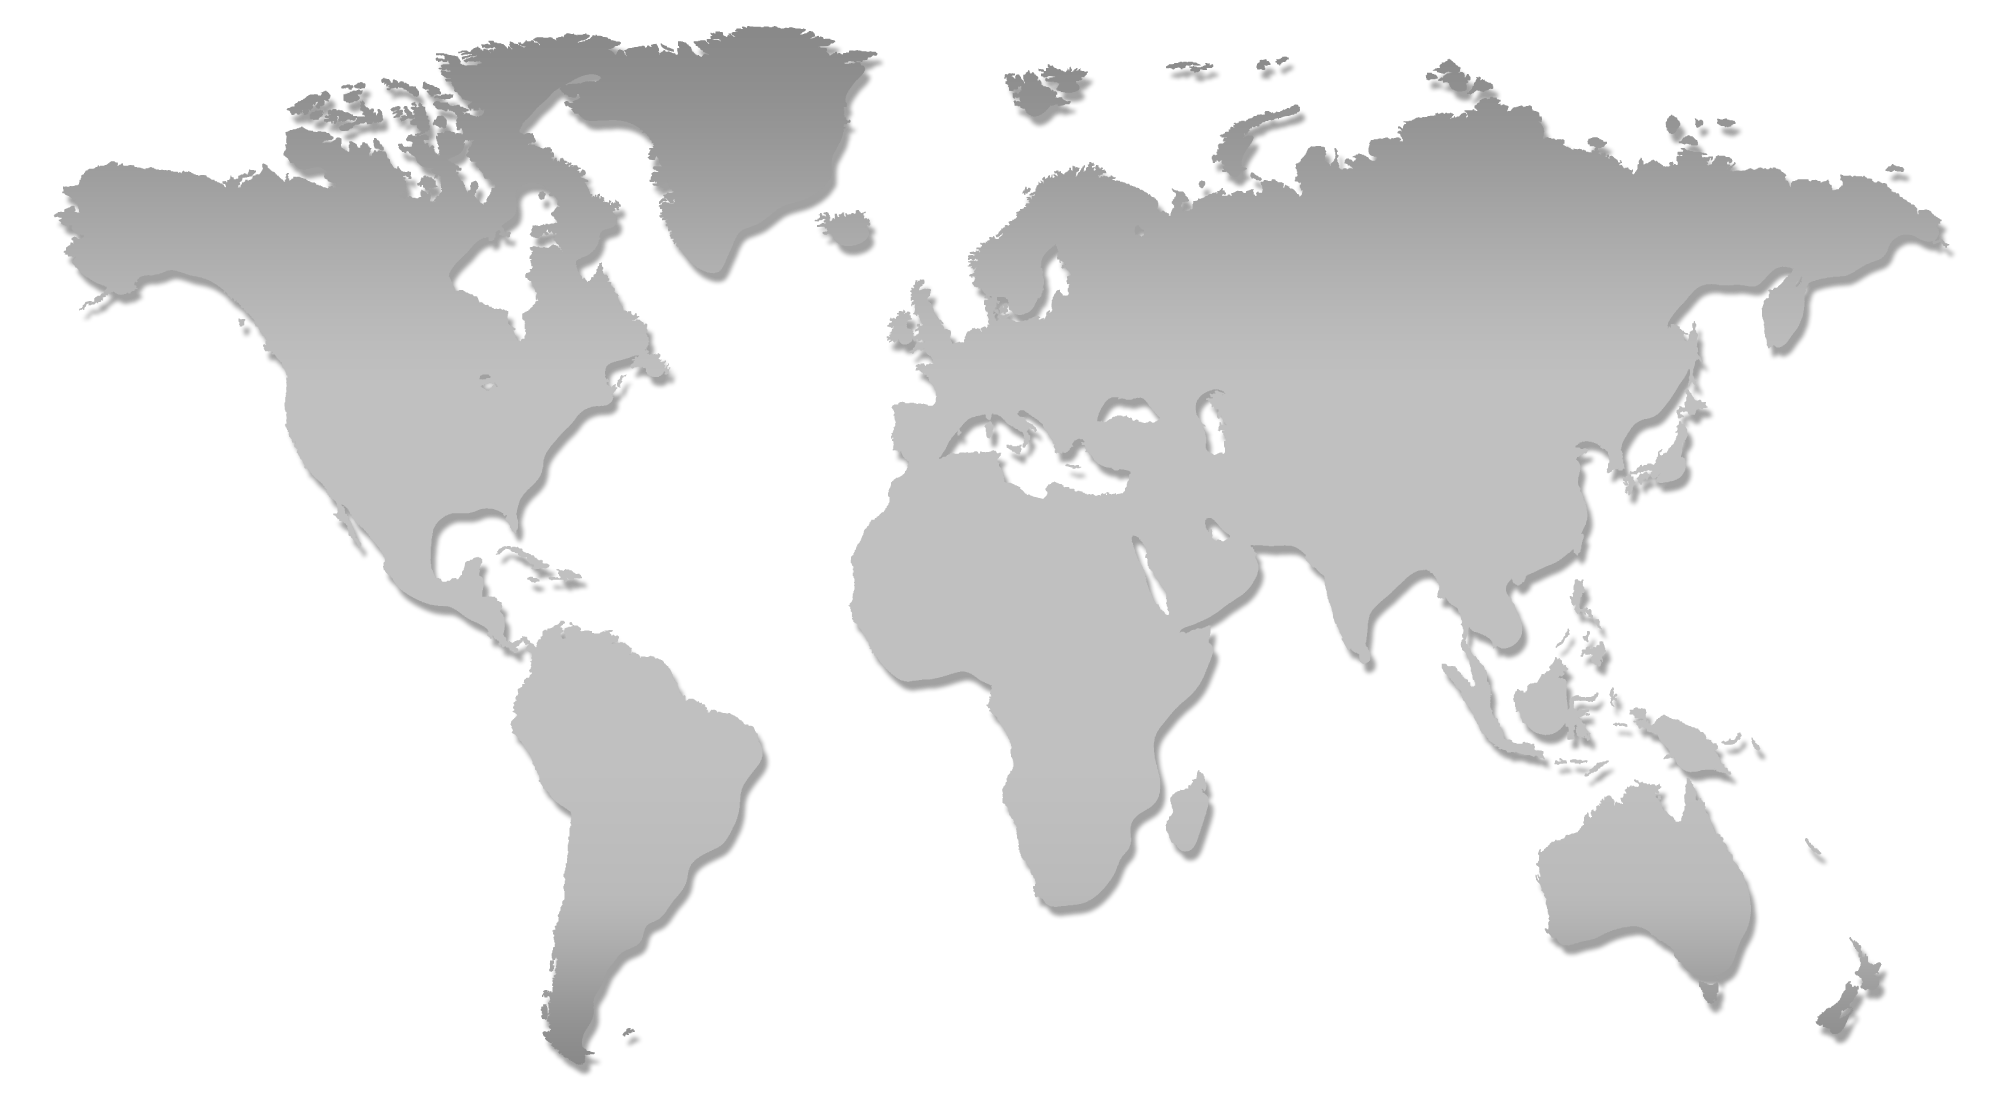 Blank world map png. Of the hd transparent